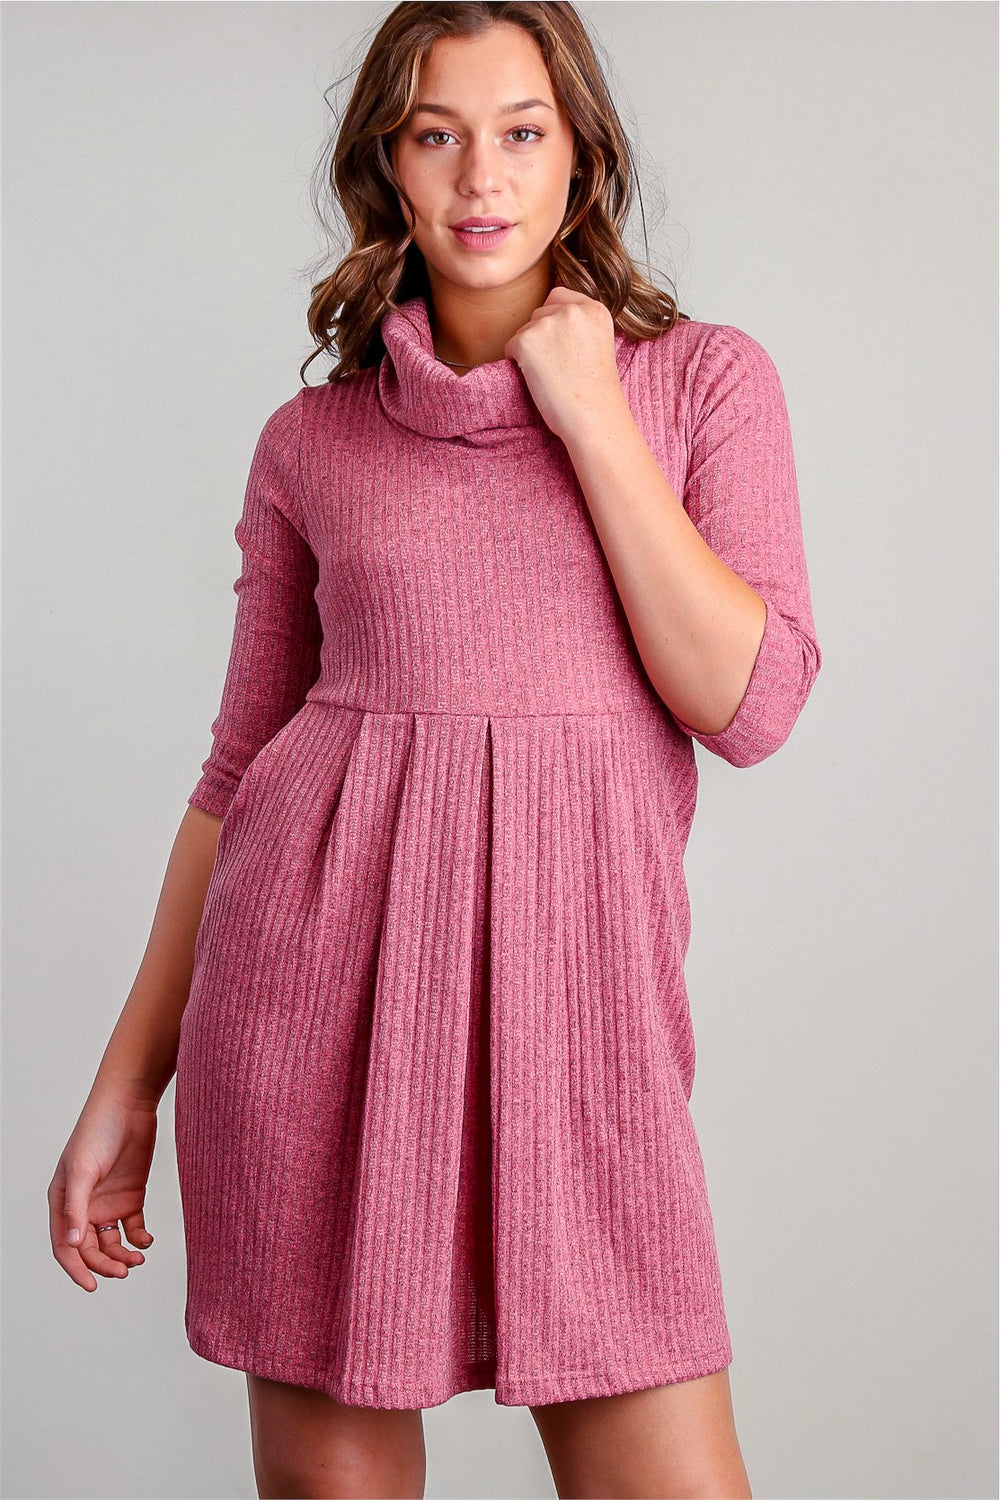 Pinky Ribbed Cowl Neck Sweater Dress Siin Bees